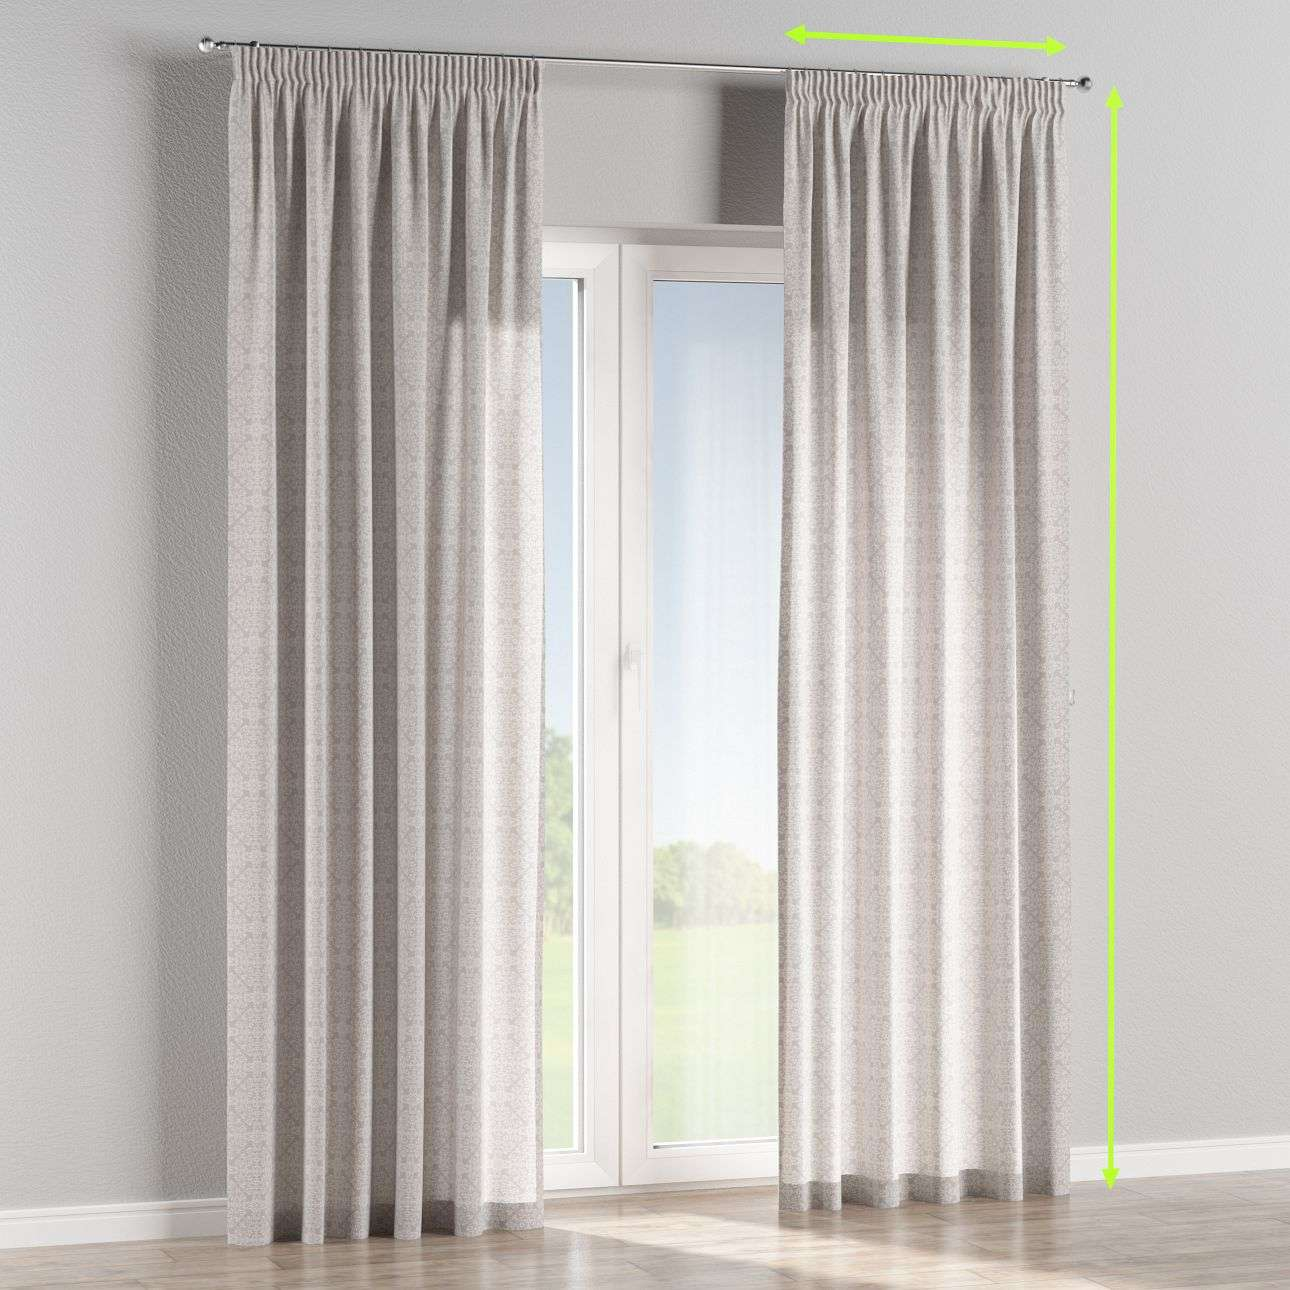 Pencil pleat lined curtains in collection Flowers, fabric: 140-38